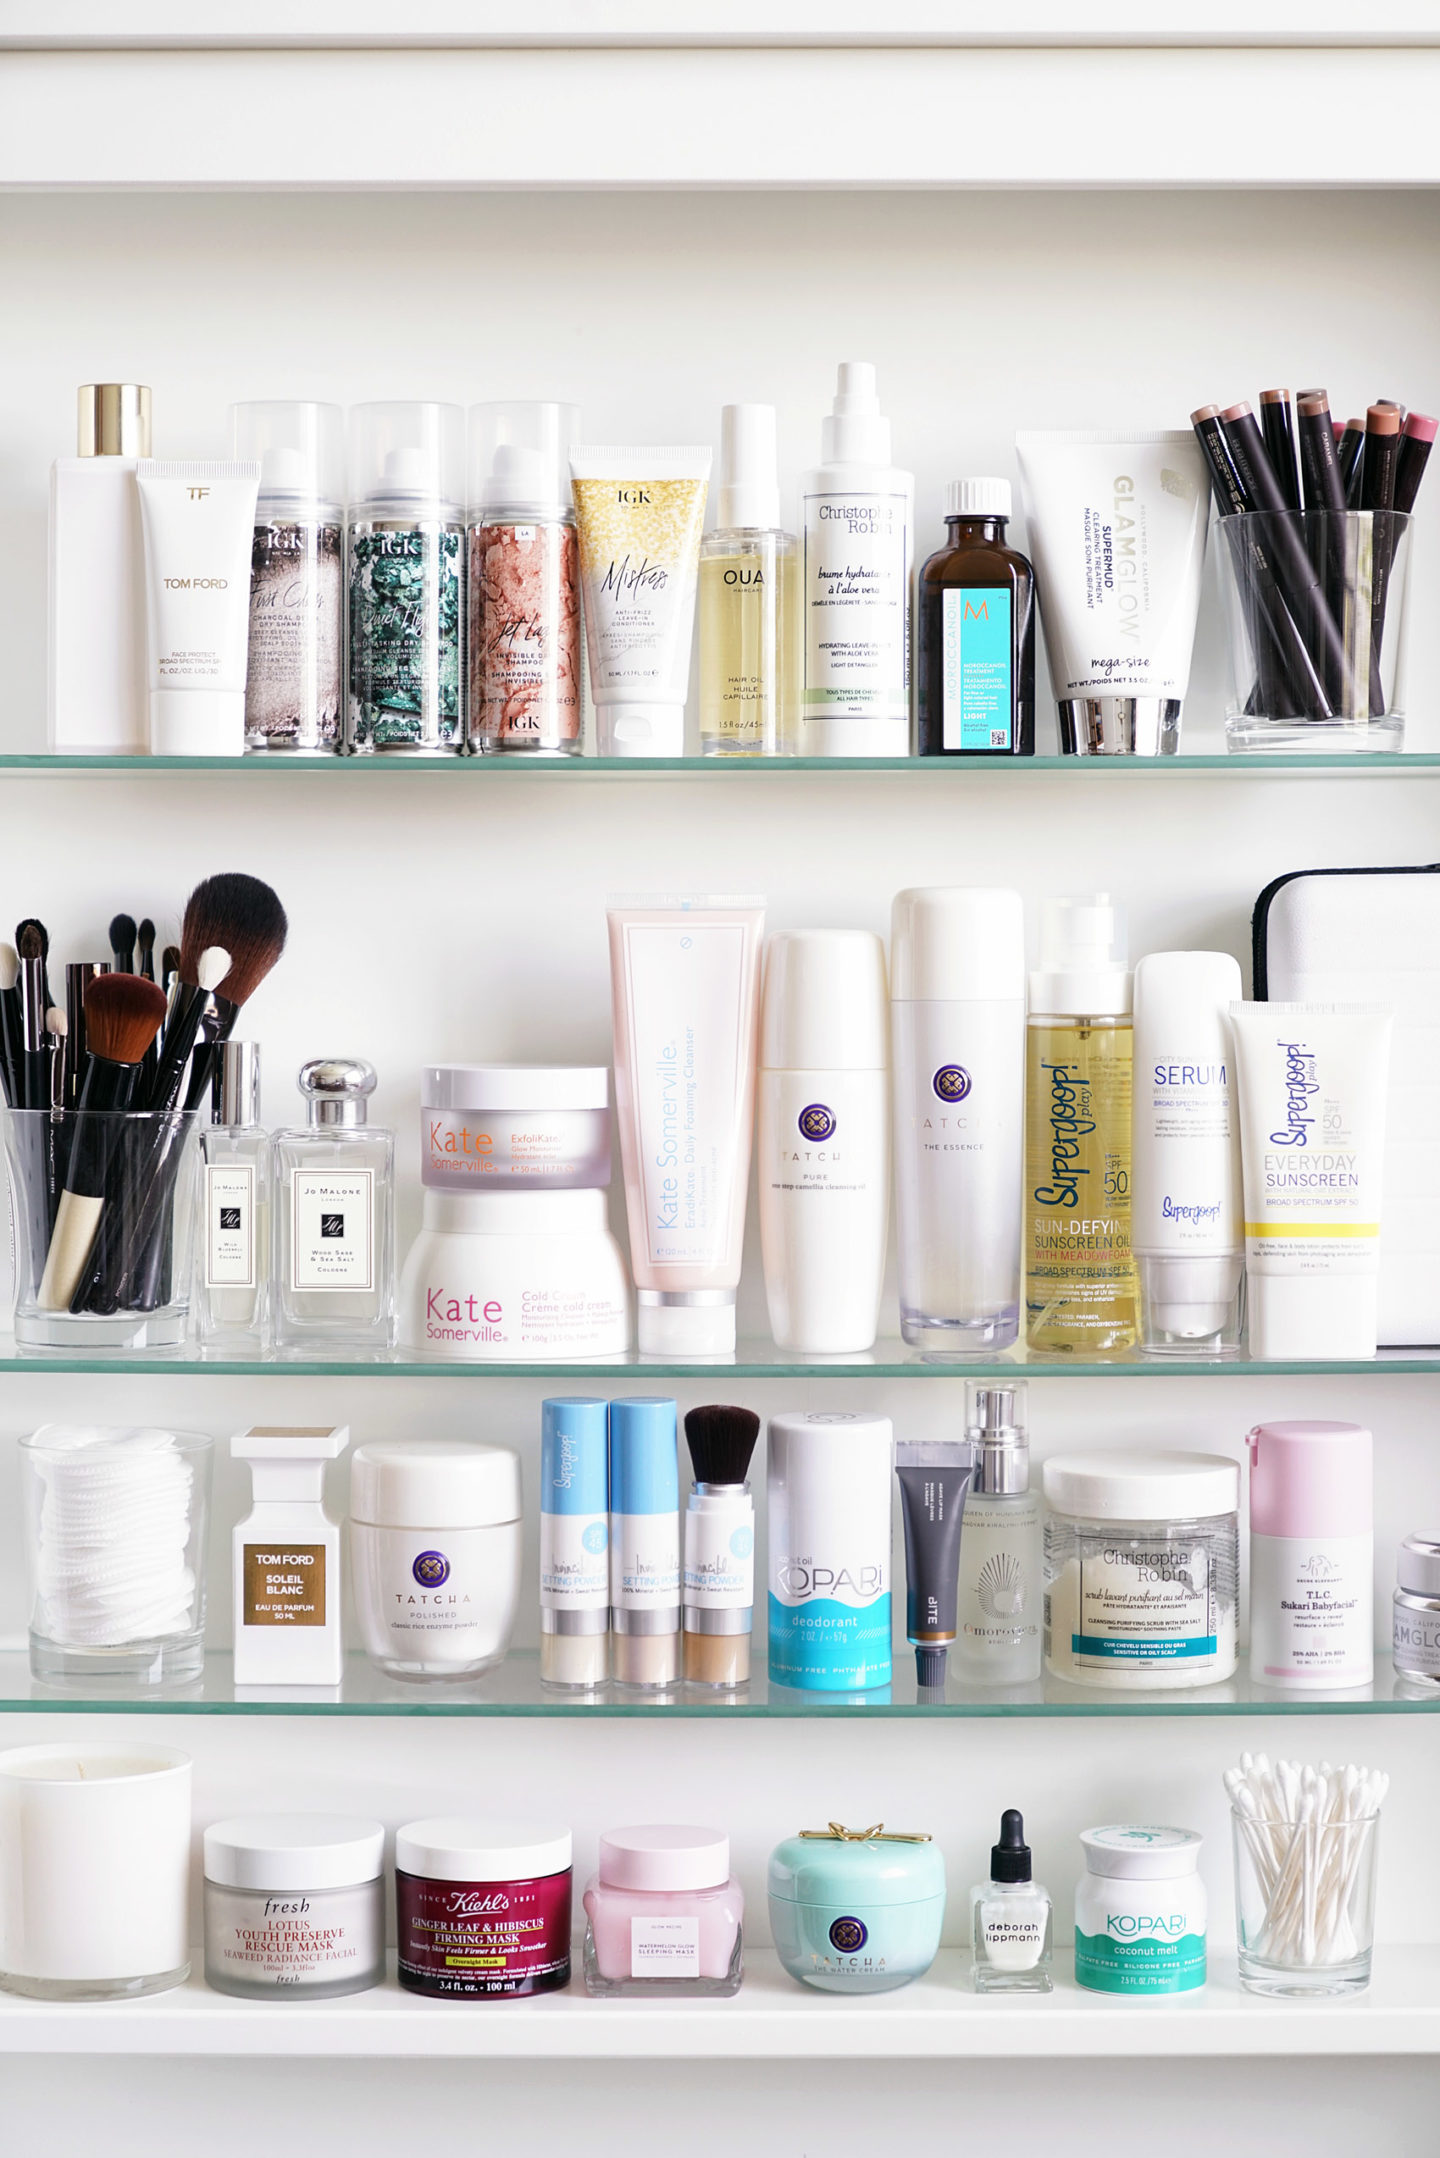 Sephora Beauty Insider Recommendations Skincare, Fragrance, Haircare via The Beauty Look Book